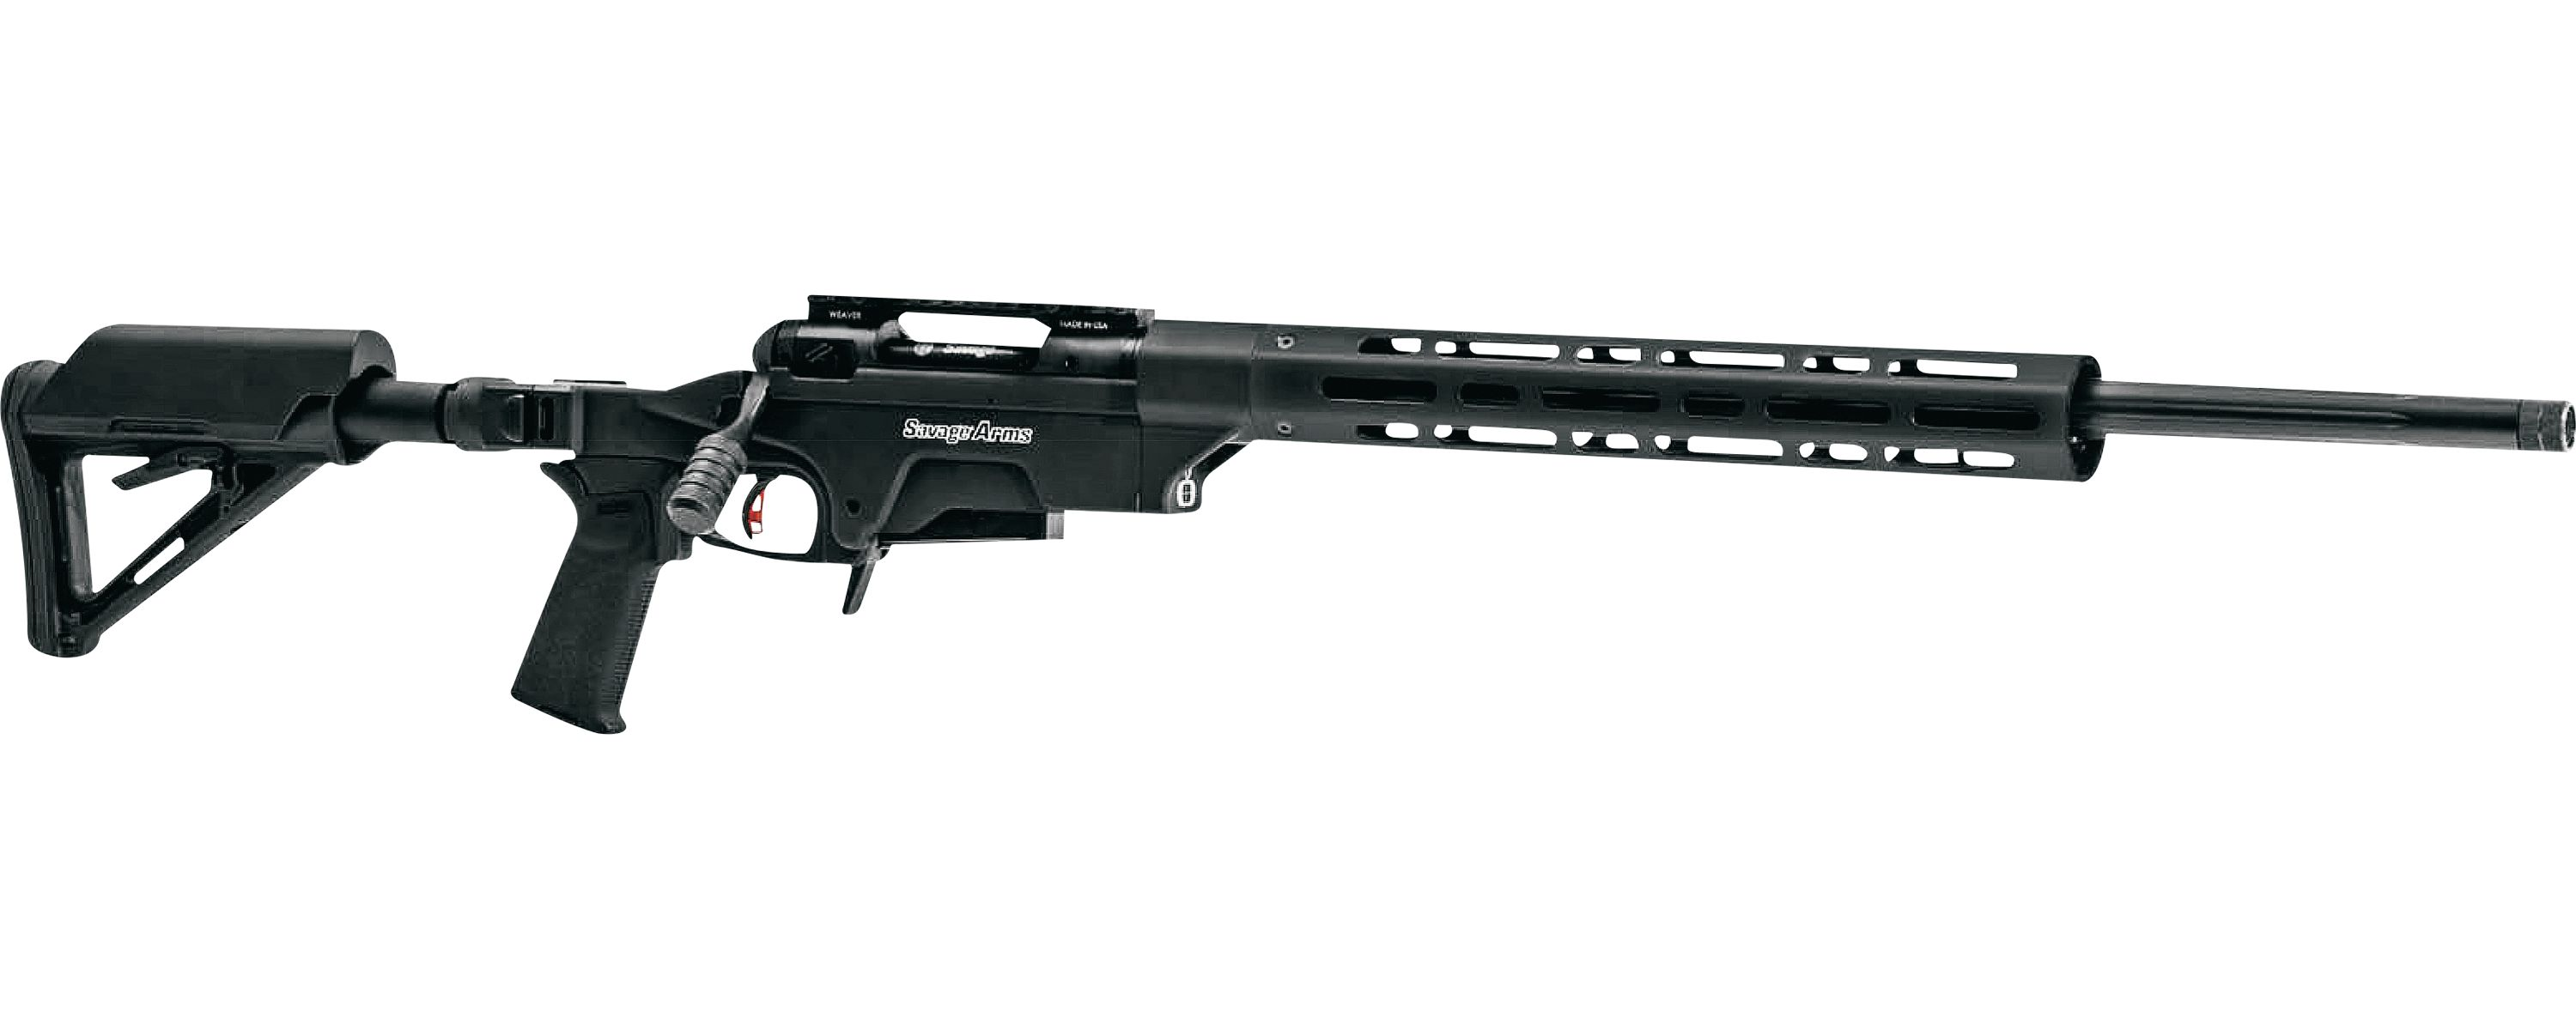 Savage Arms Model 10 Ashbury Precision Ordnance Chassis Bolt-Action Rifle -  $999 88 (Free 2-Day Shipping over $50)